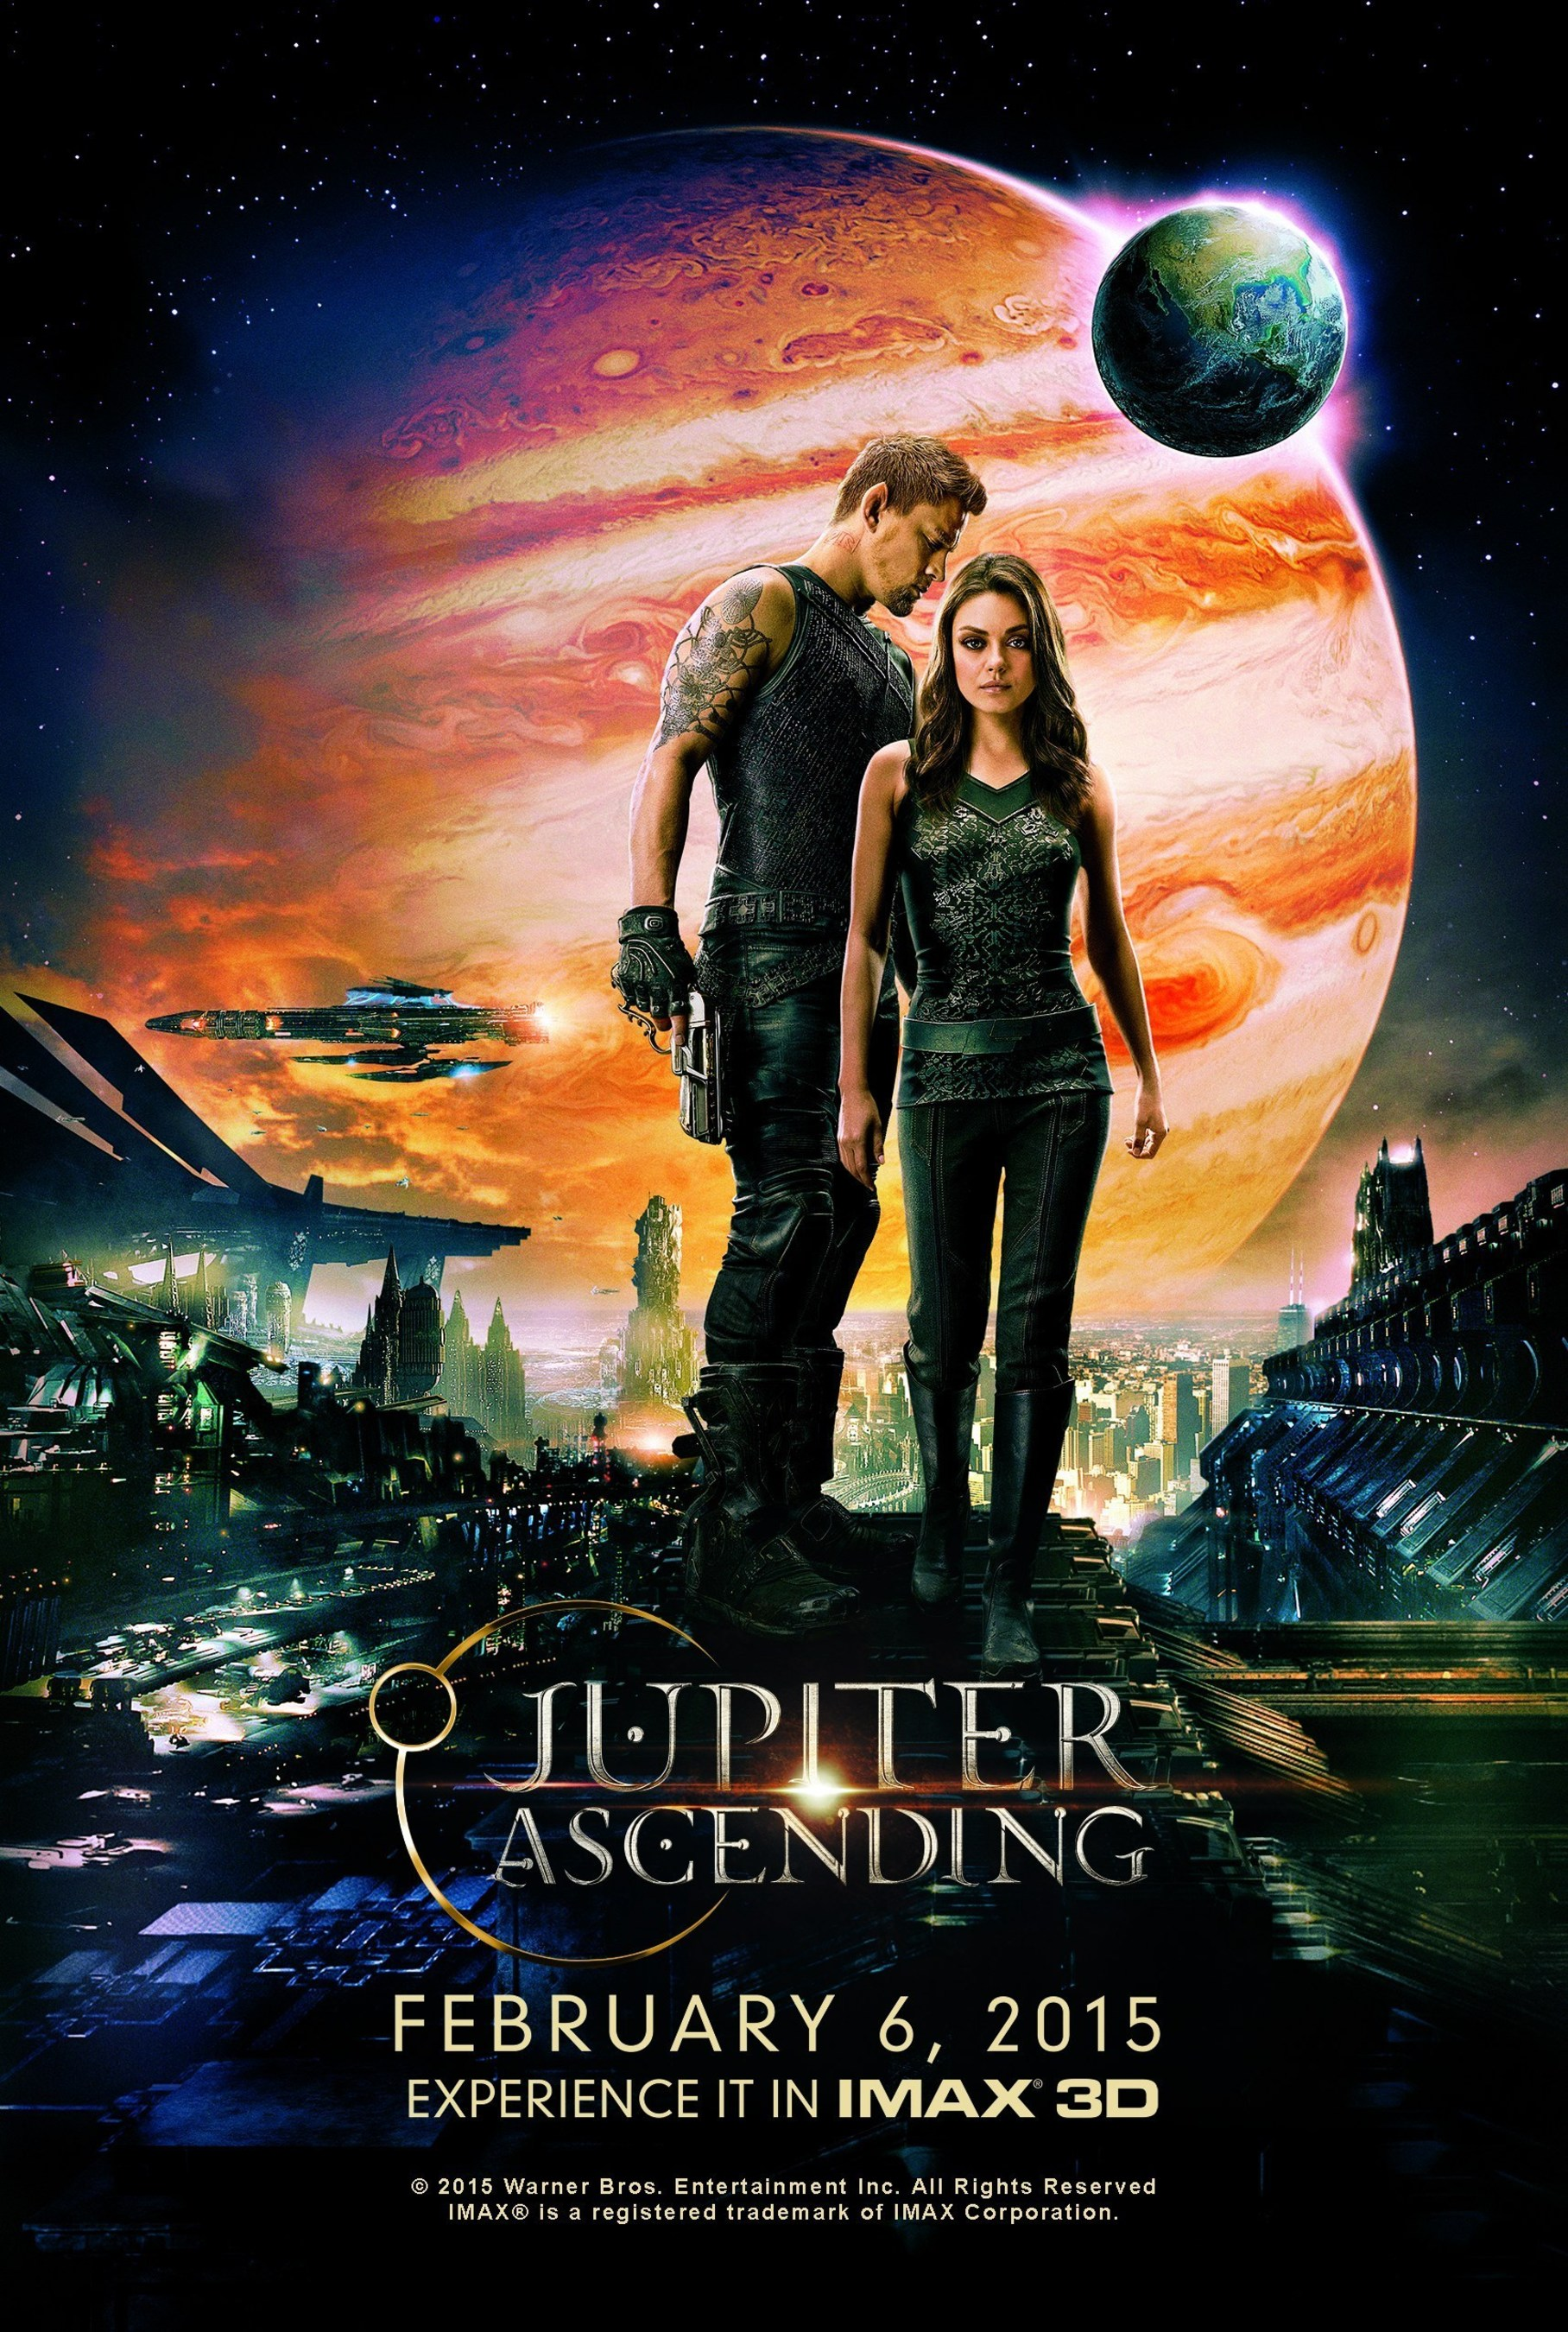 """IT'S AN OUT OF THIS WORLD CELEBRATION! International Star Registry has teamed up with Warner Bros. Pictures to celebrate the release of the new movie, """"Jupiter Ascending,"""" in theaters beginning February 6th from Warner Bros. Pictures and Village Roadshow Pictures."""